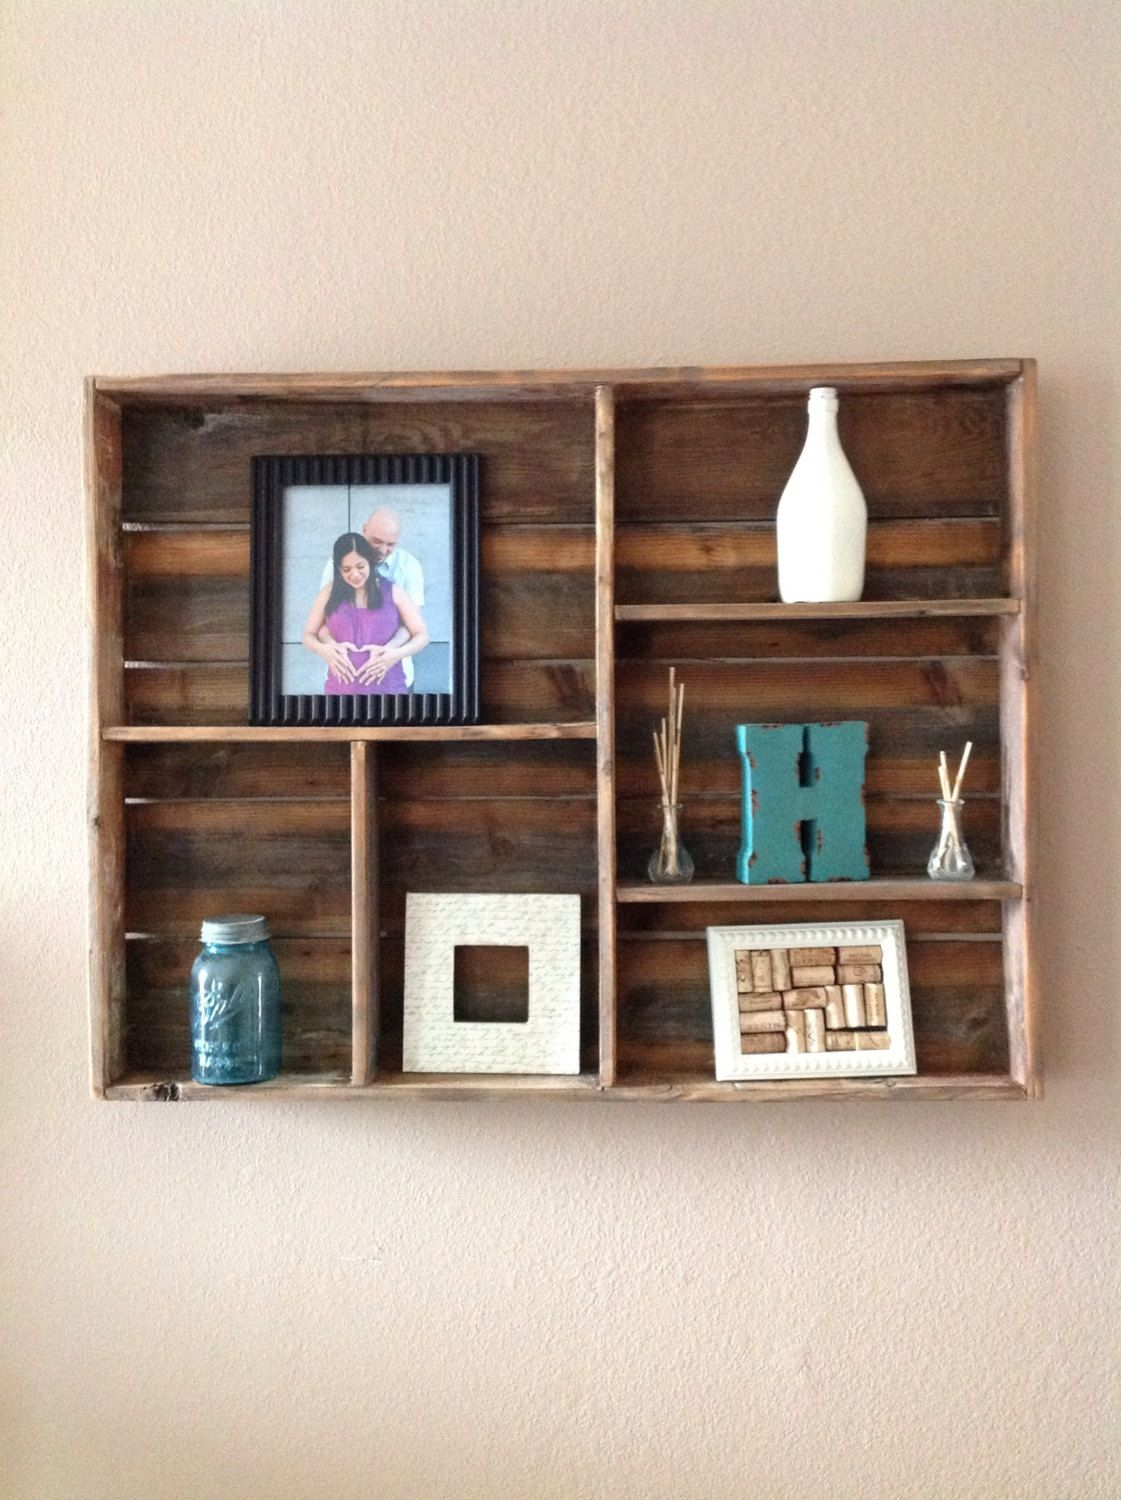 Reclaimed wood wall shelf large by DelHutsonDesigns on Etsy - Reclaimed Wood Wall Shelf (large) Shelving, Wall Shelving And